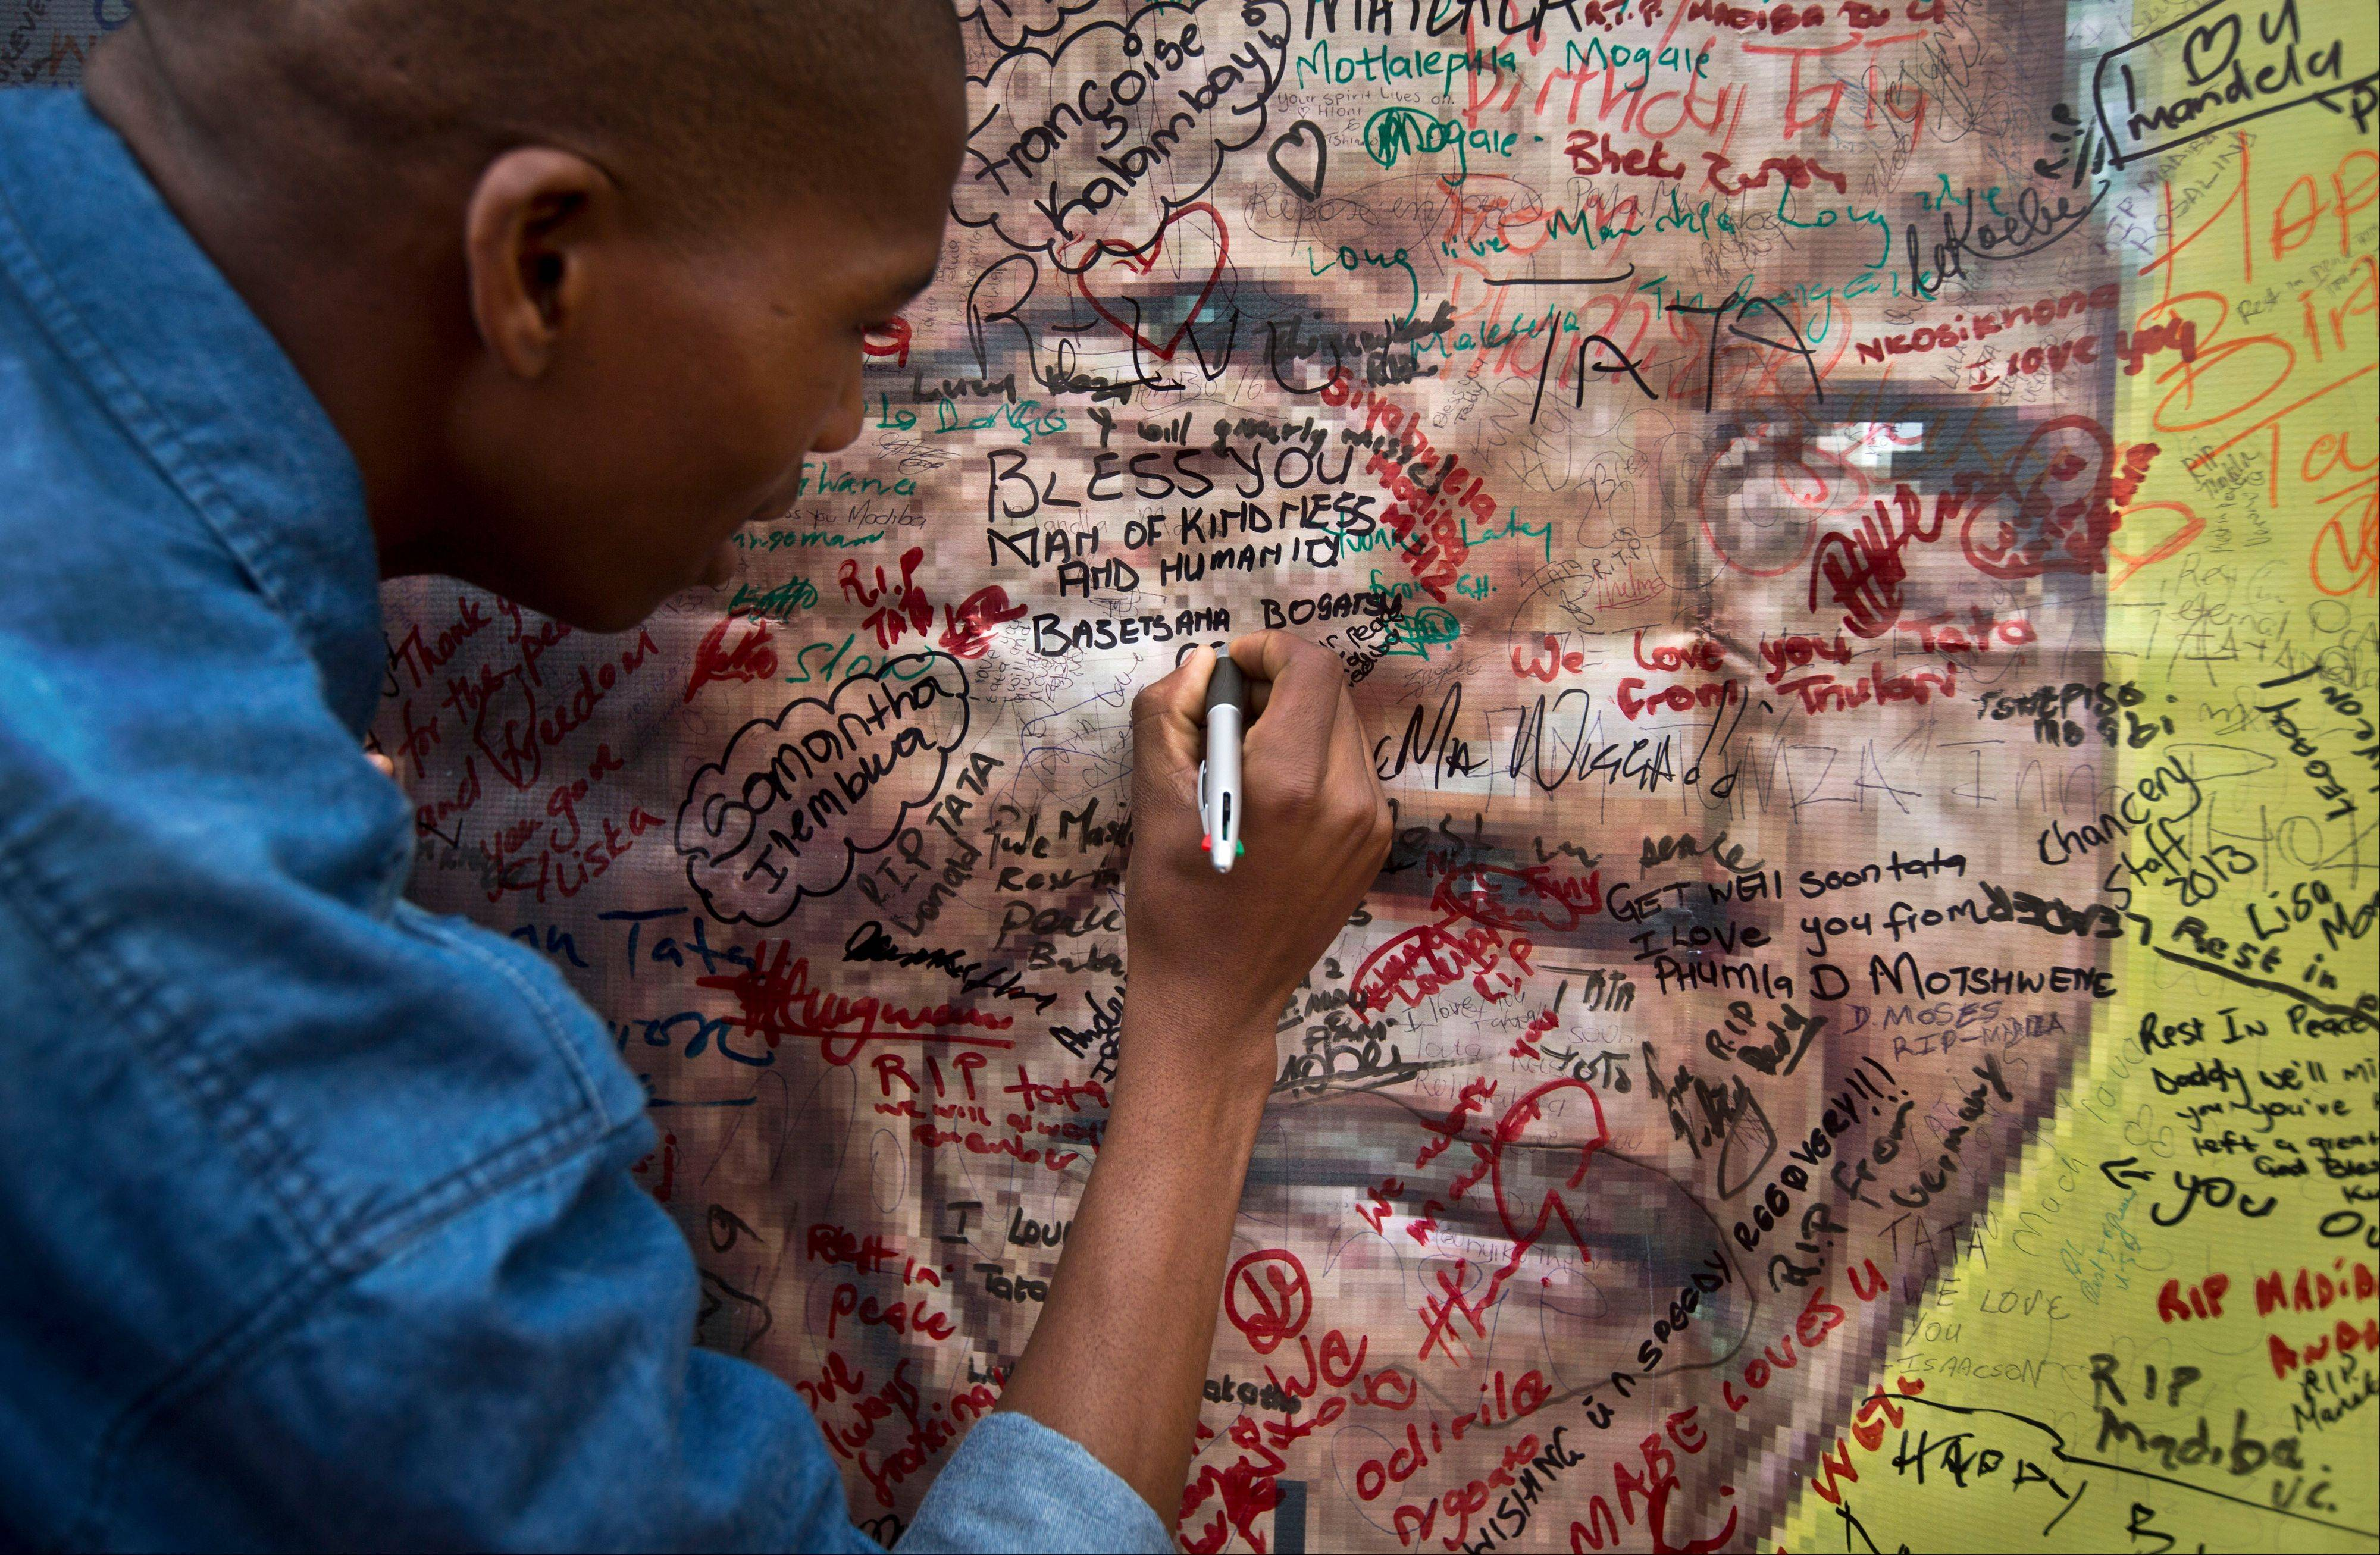 A well-wisher writes a message on a poster of Nelson Mandela, on which he and others have written their messages of condolence and support, in the street Friday outside his old house in Soweto, Johannesburg. Flags were lowered to half-staff and people in black townships, in upscale mostly white suburbs and in South Africa�s vast rural grasslands commemorated Nelson Mandela with song, tears and prayers on Friday while pledging to adhere to the values of unity and democracy that he embodied.